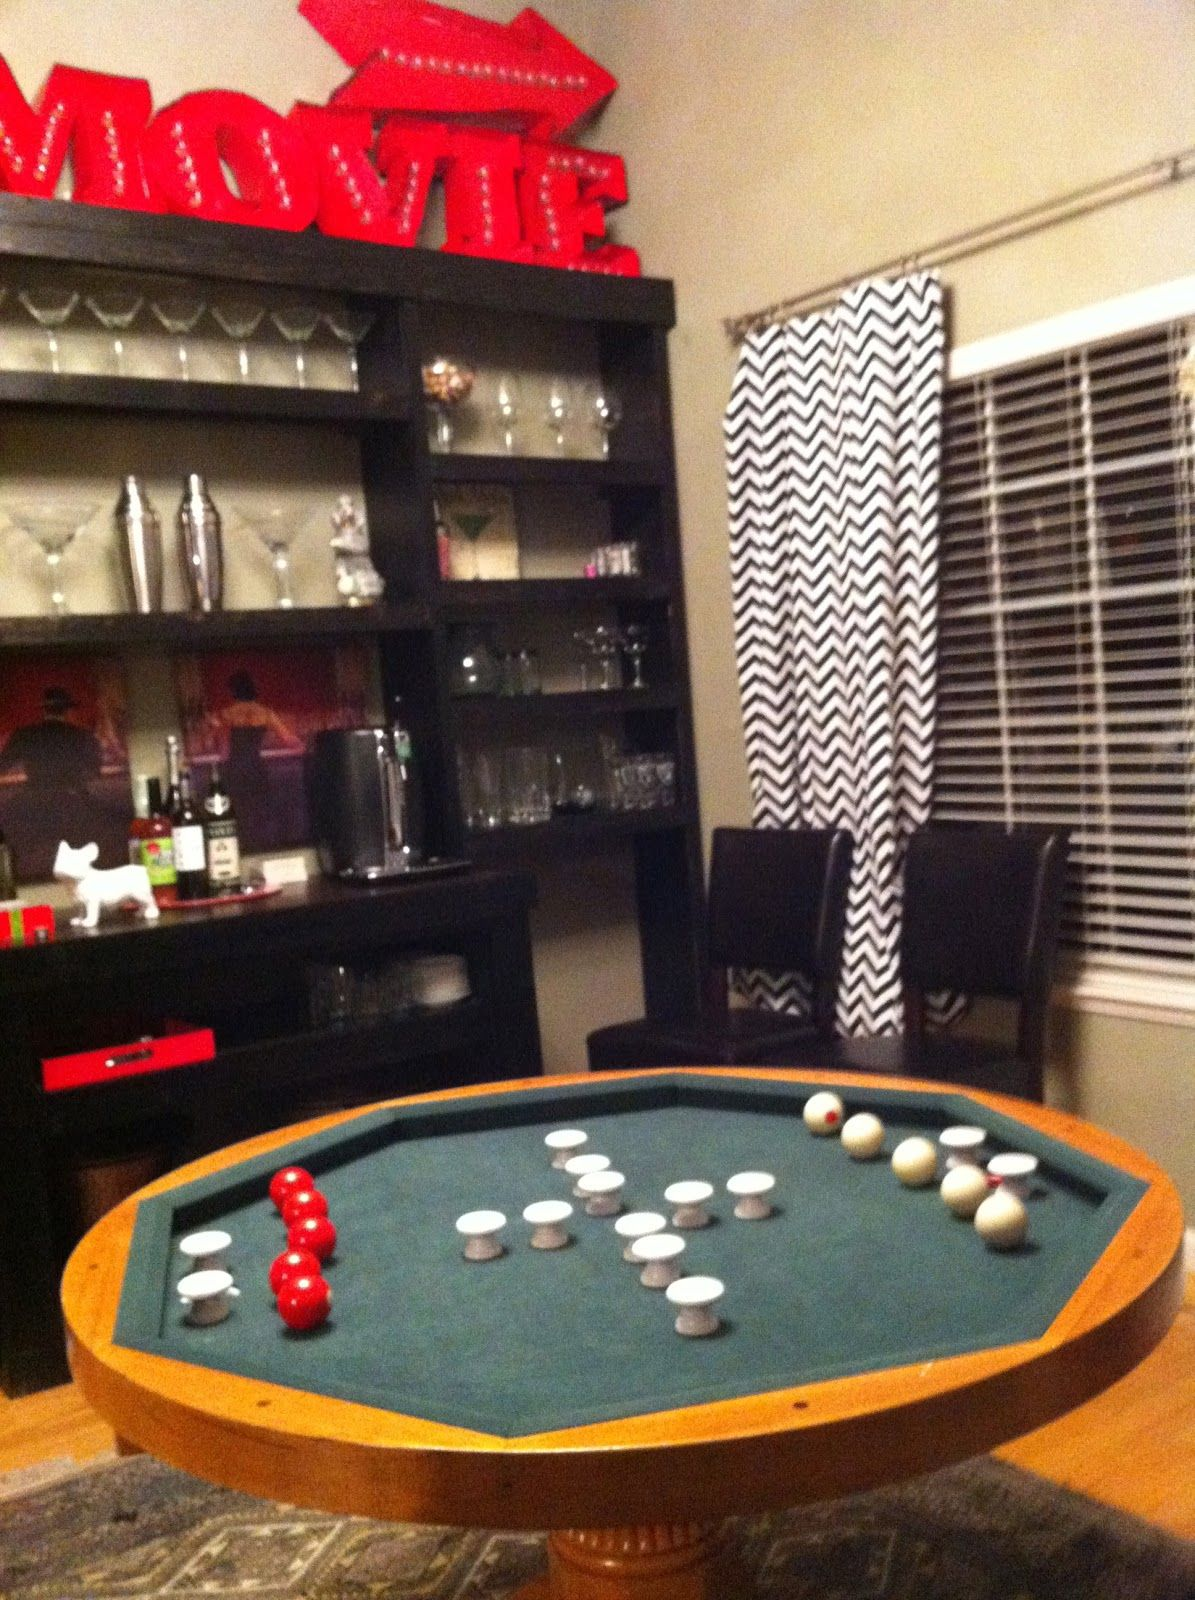 Blue Is The New Neutral Bumper Pool Table Bumper Pool Game Room